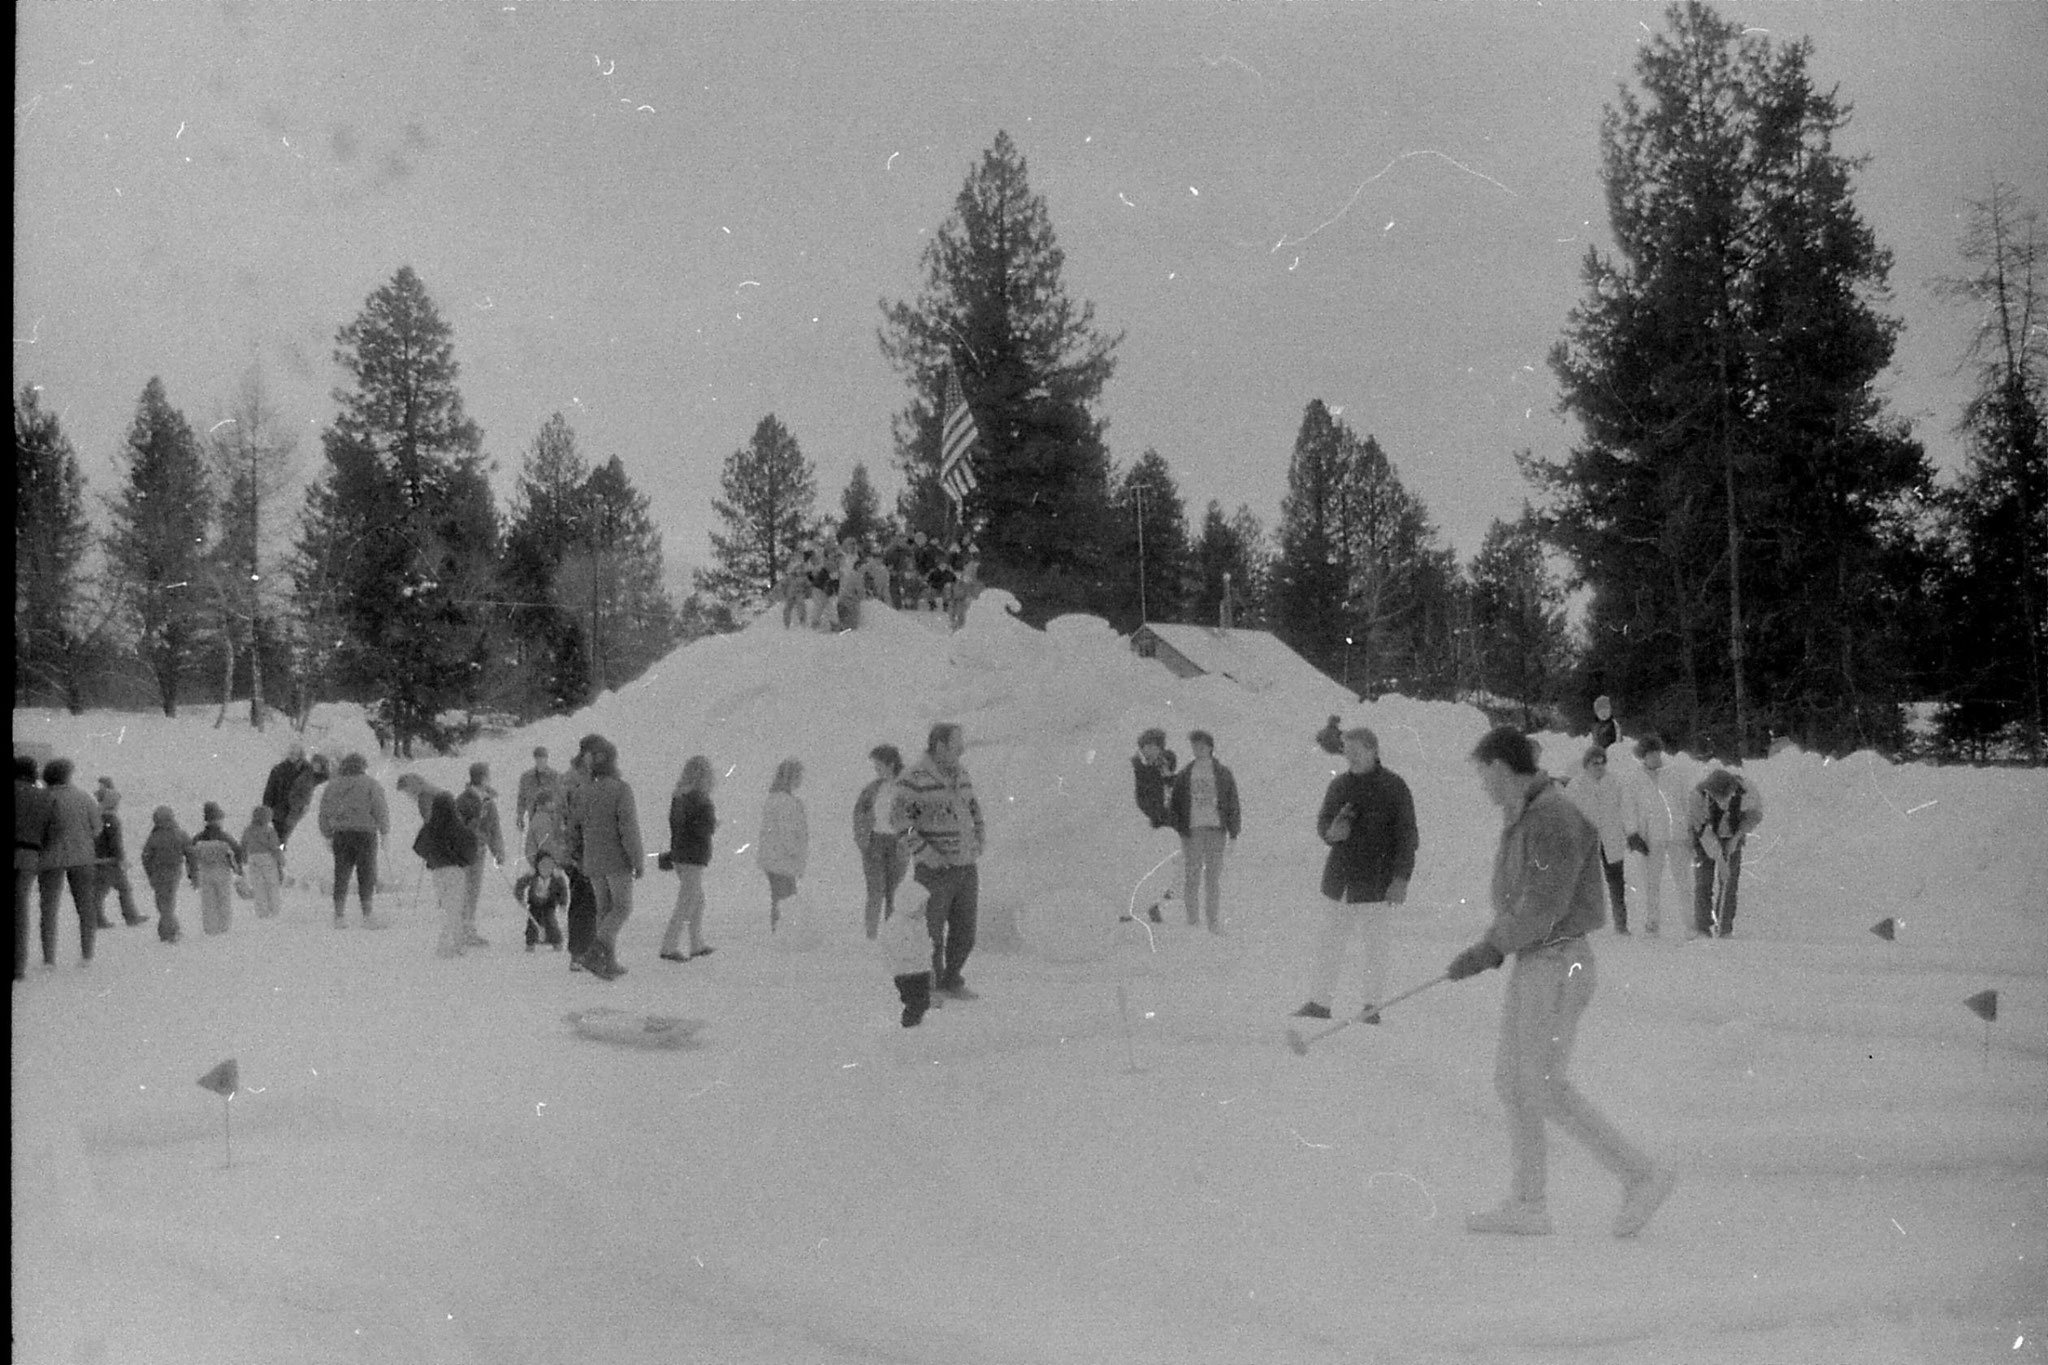 2/2/1991: 19: McCall Ice Festival